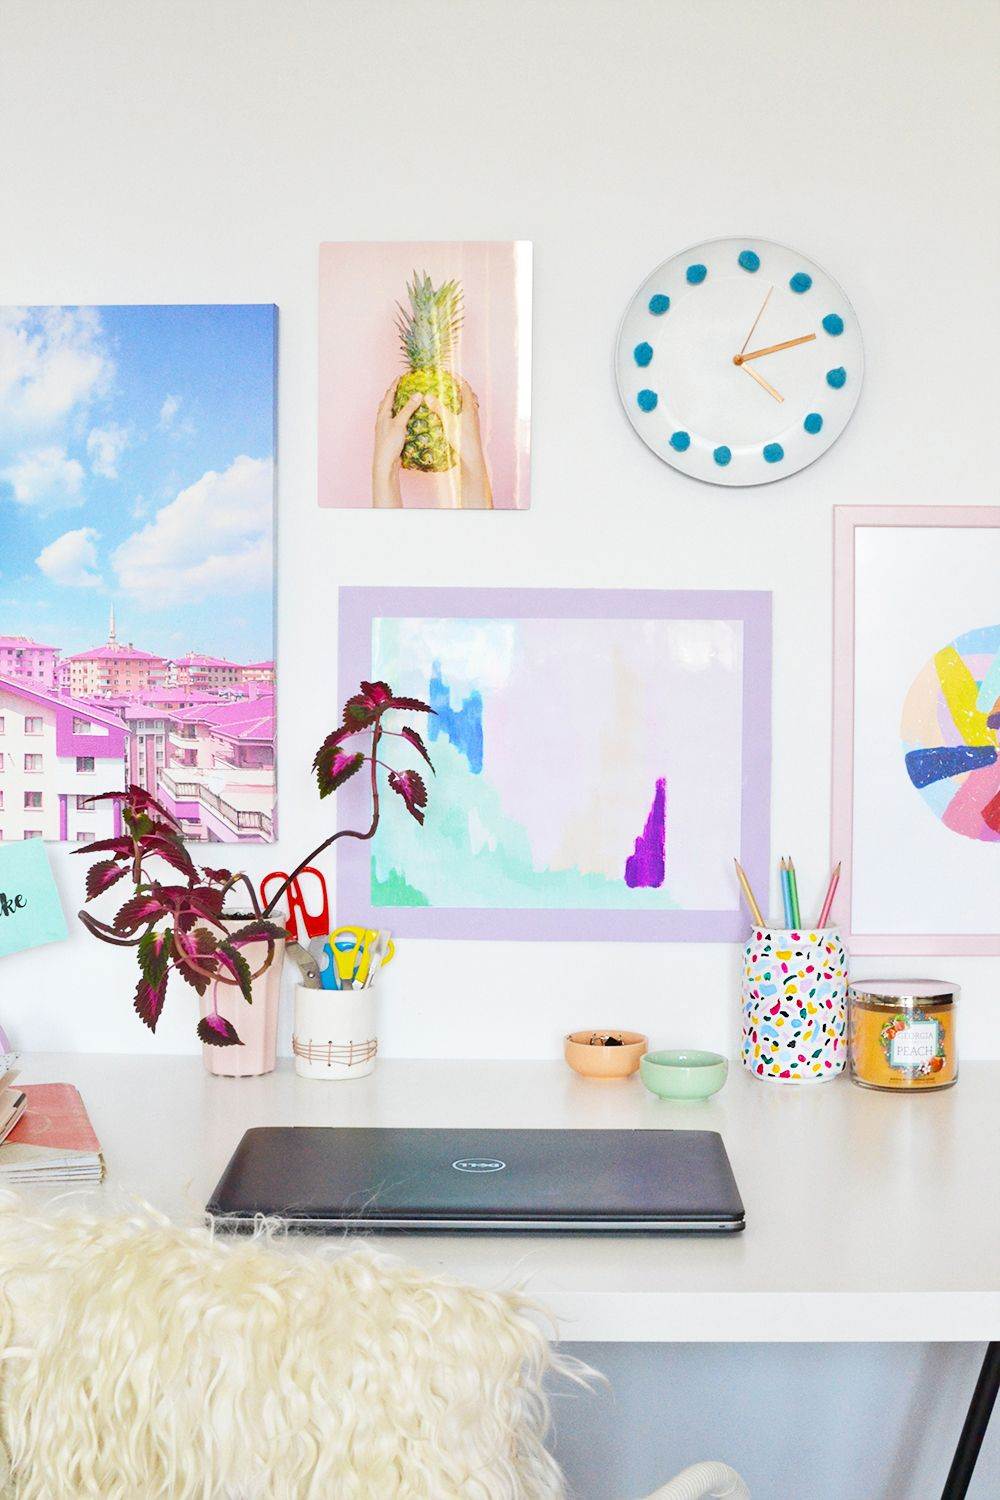 DIY Colorful Poster Frame + Wall Gallery with Mixbook | DIY Home ...